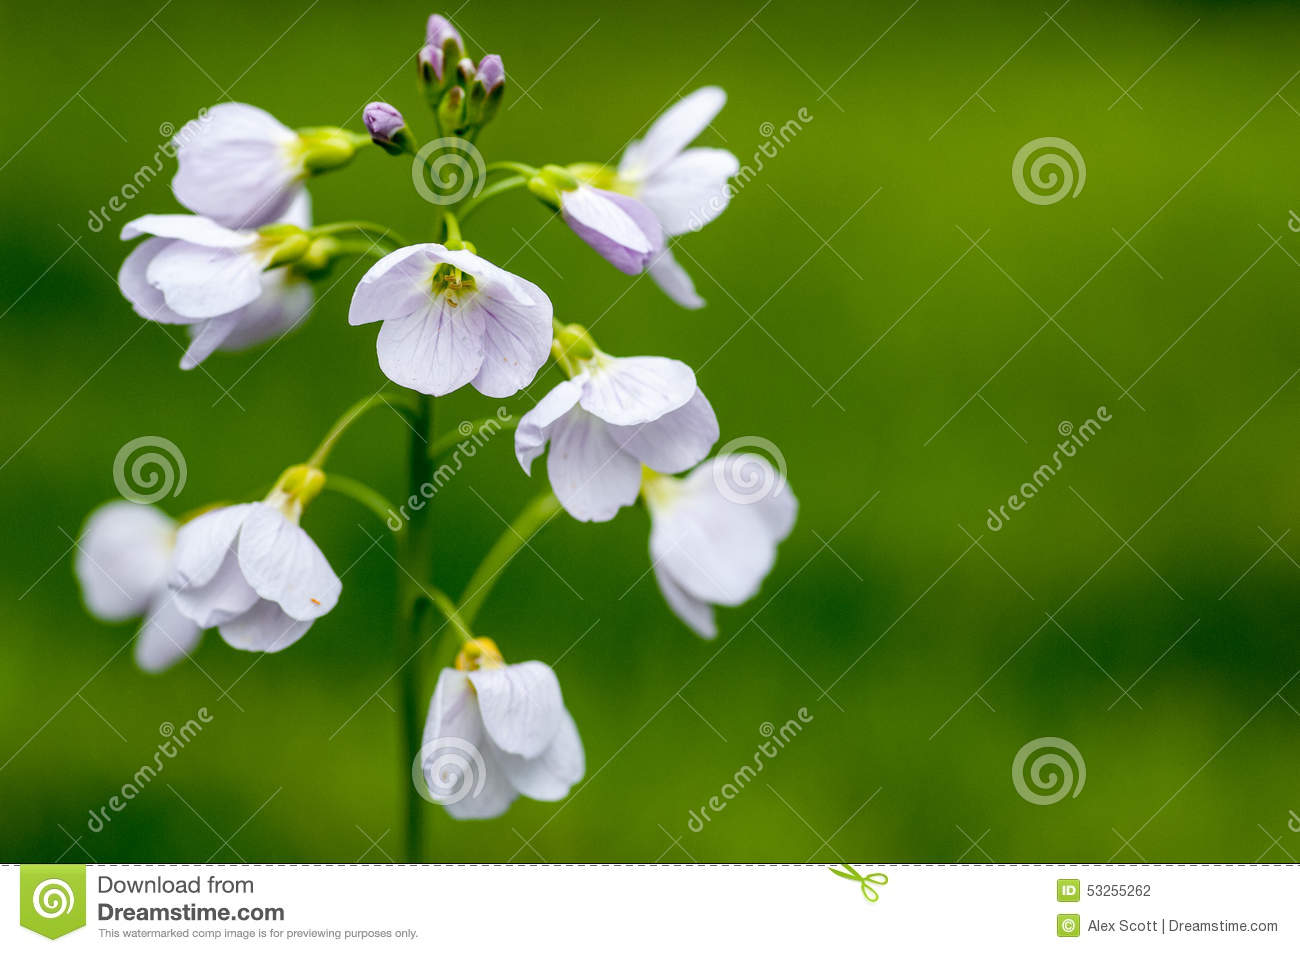 Plant portrait ladys smock stock photo image of flower cuckoo download plant portrait ladys smock stock photo image of flower cuckoo 53255262 izmirmasajfo